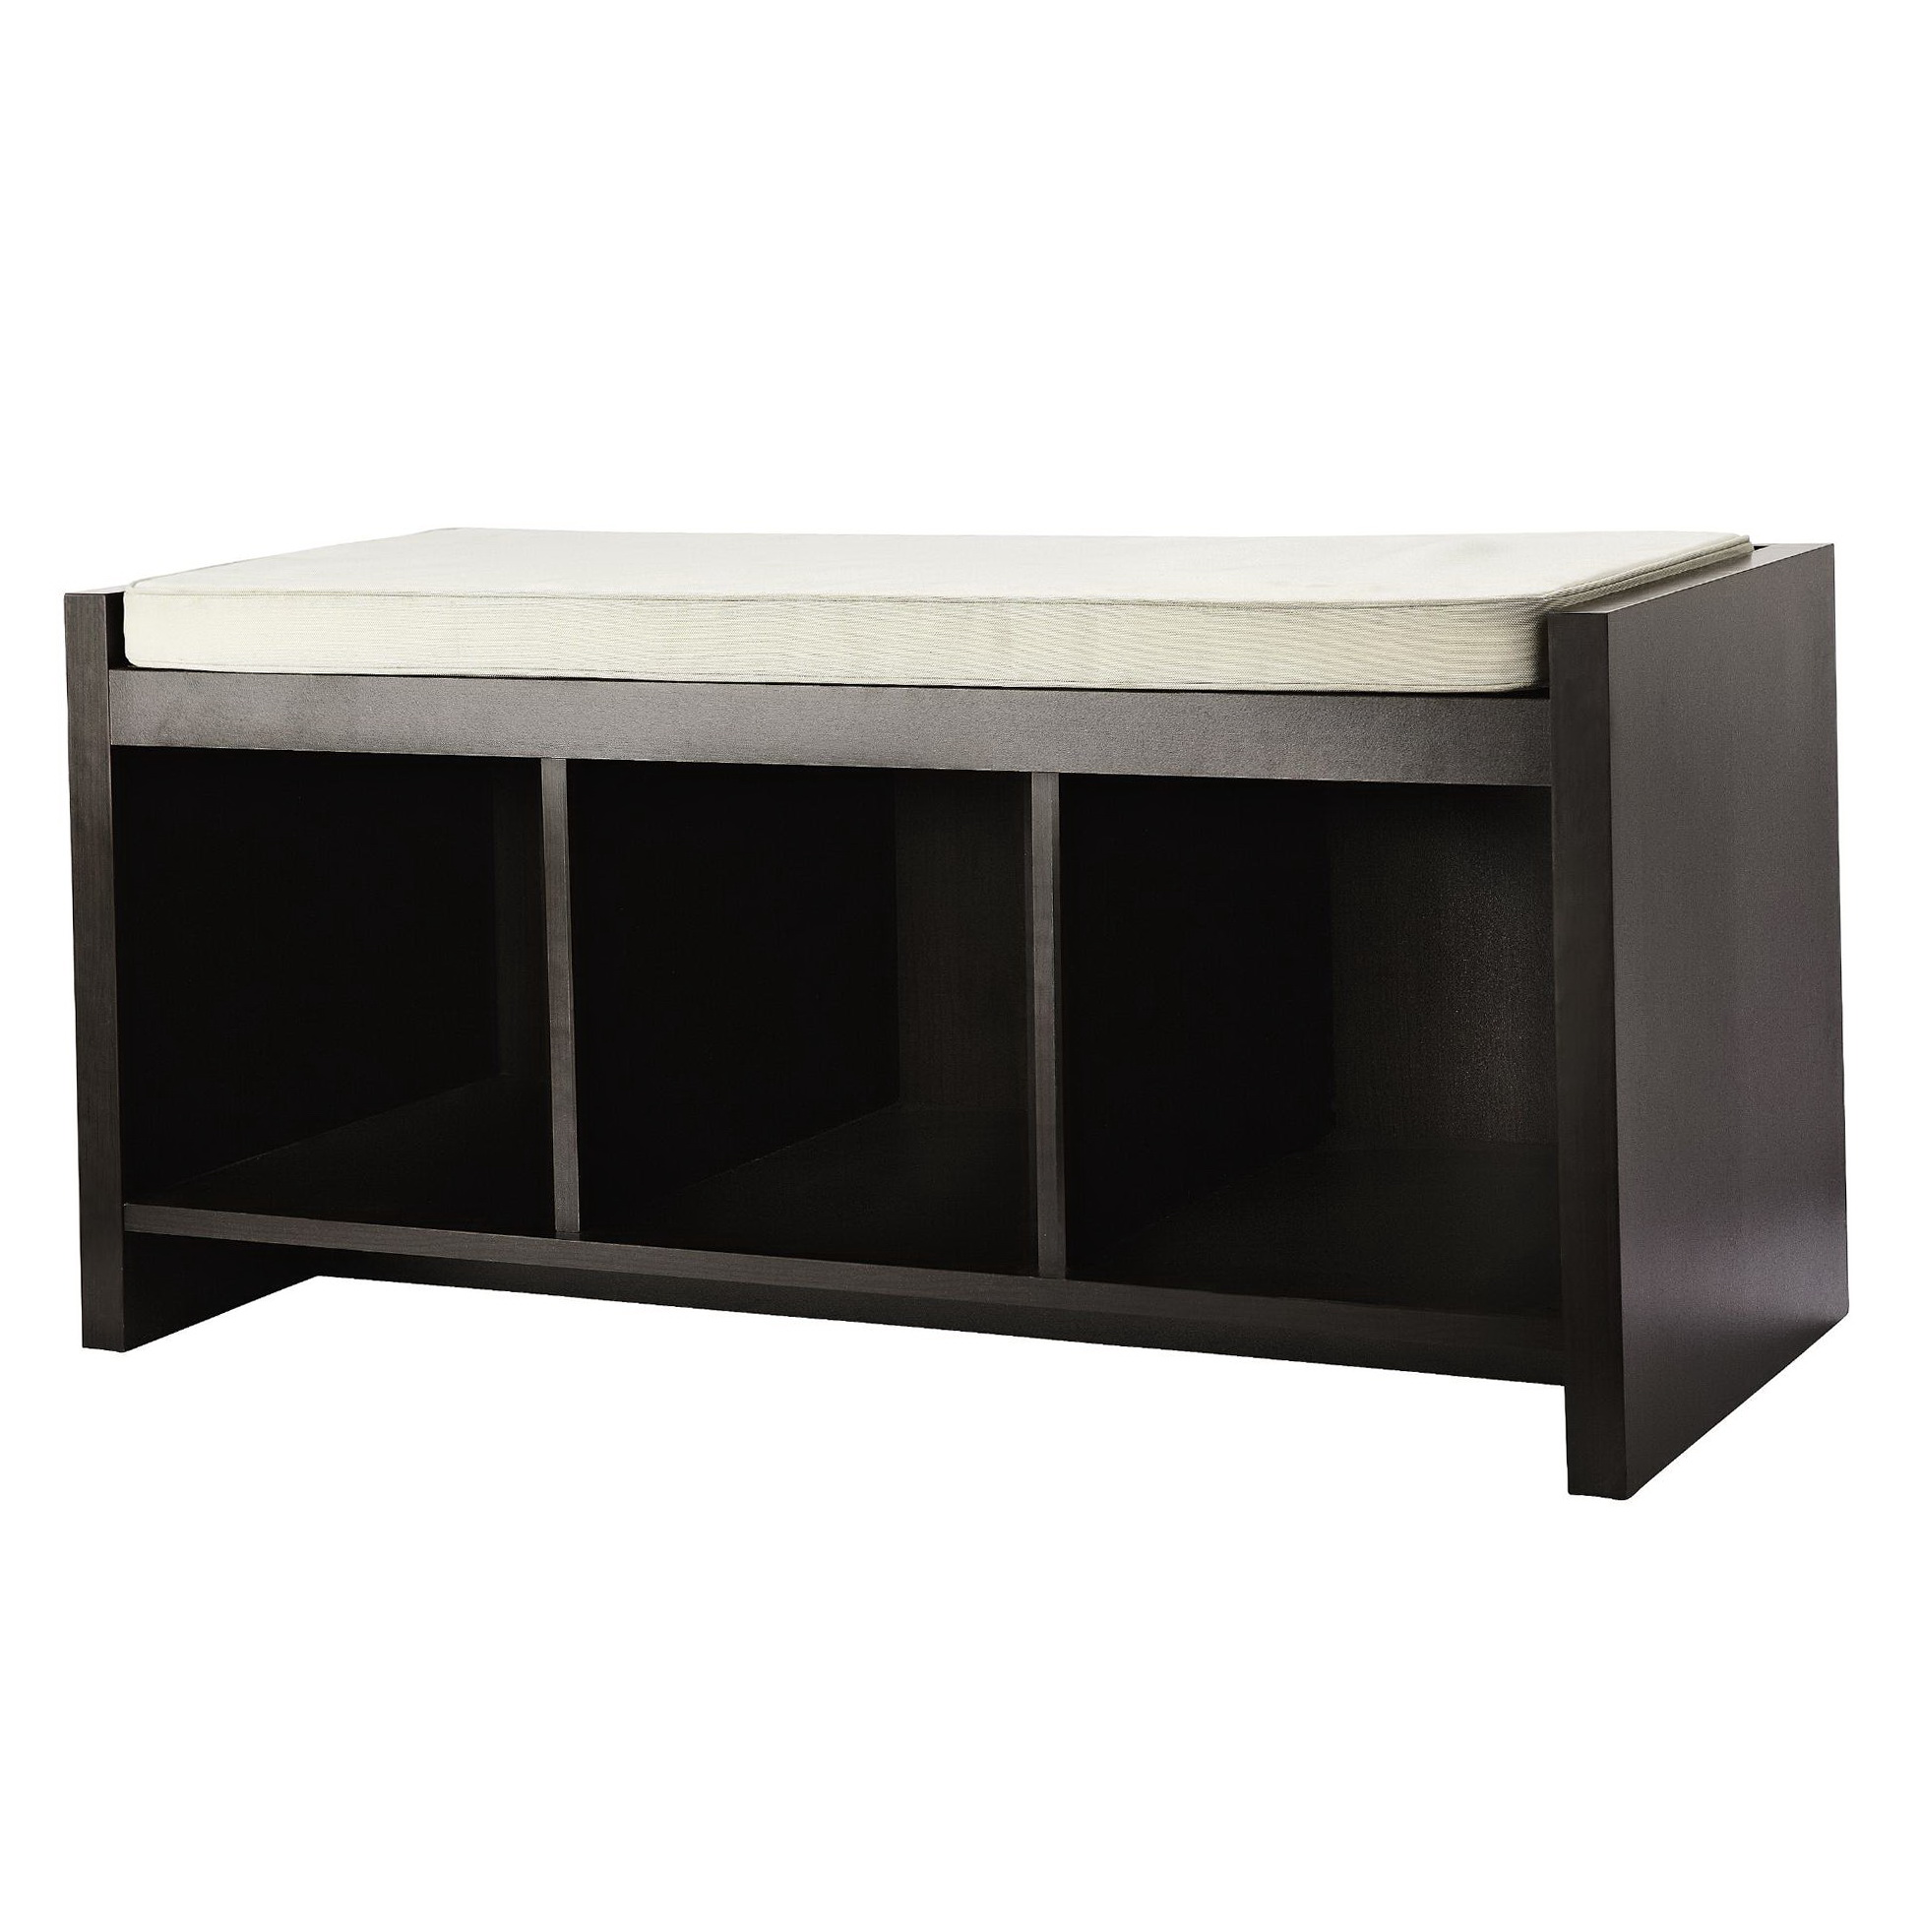 Black storage bench with cushion home design ideas Storage bench with cushion